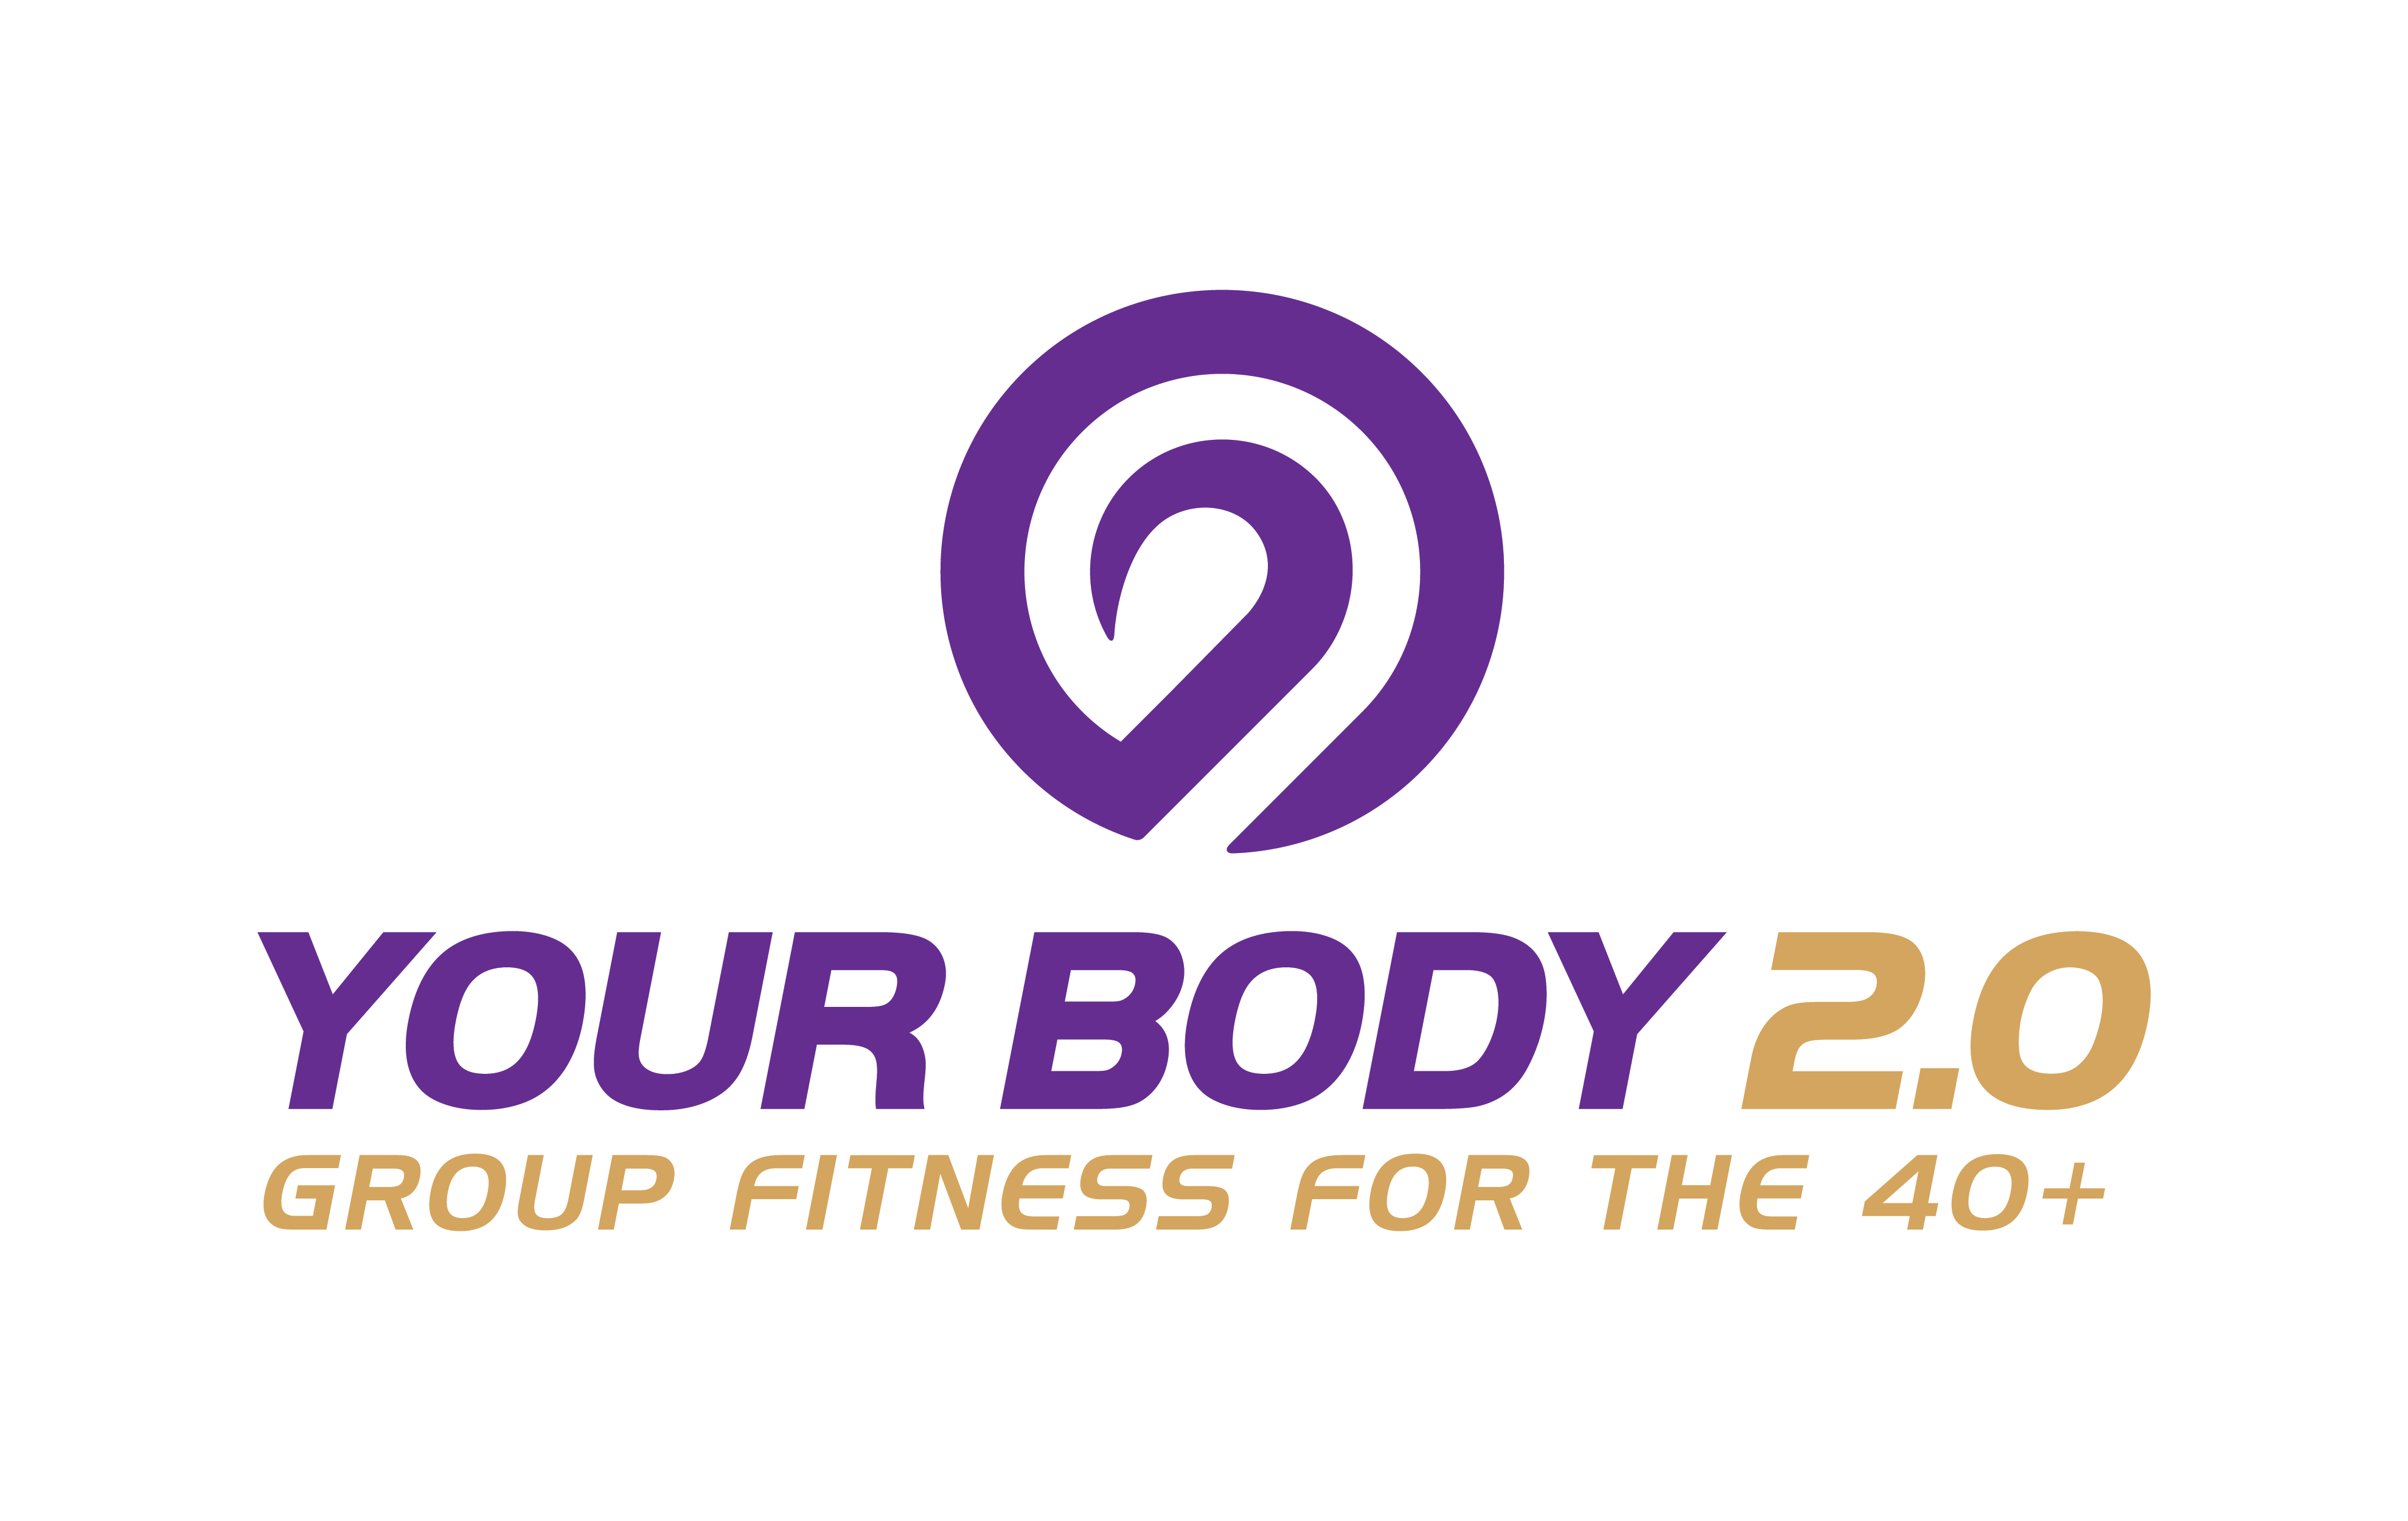 Homeroom Fit | Your Body 2.0 Group Fitness for the 40+